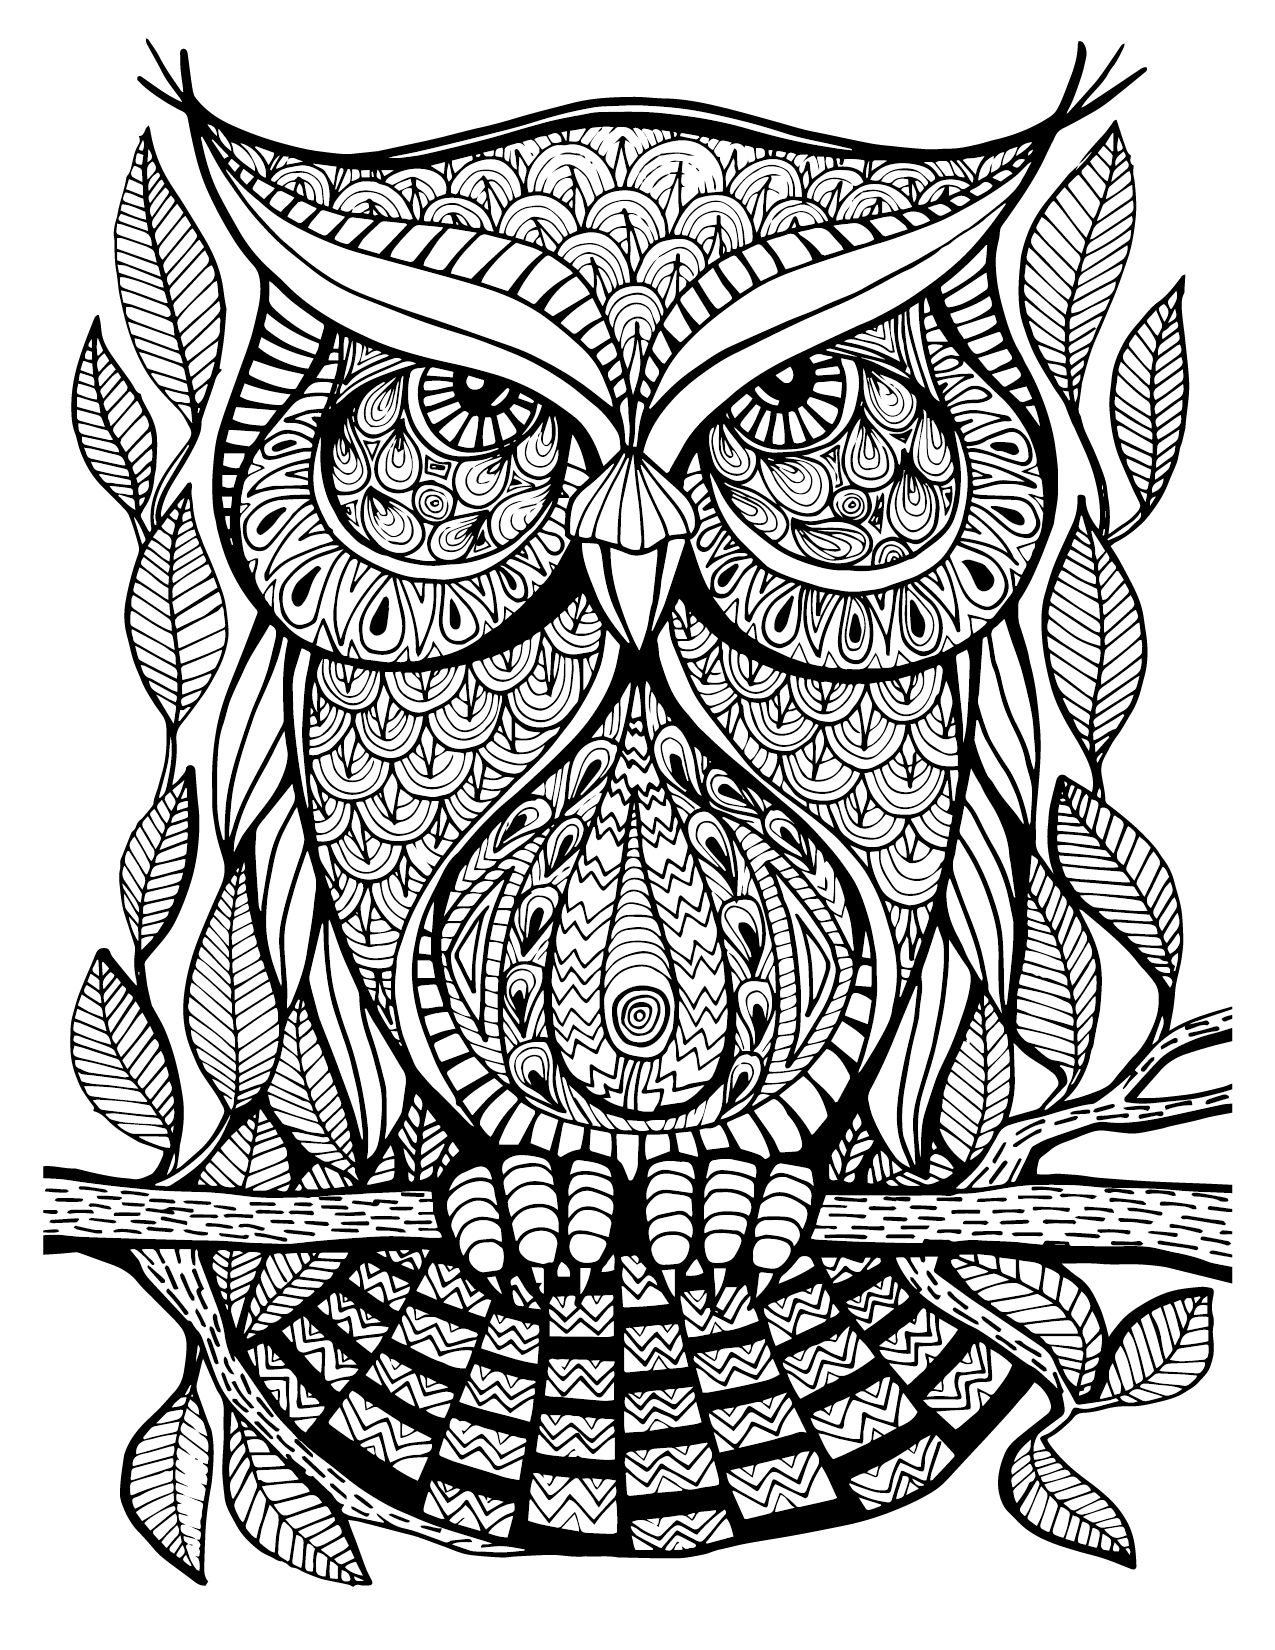 Check out this great adult coloring image straight out of our new coloring book!   More amazing books found here!! http://www.amazon.com/Katherine-Kennedy/e/B013VRAU9Y/ref=dp_byline_cont_ebooks_1